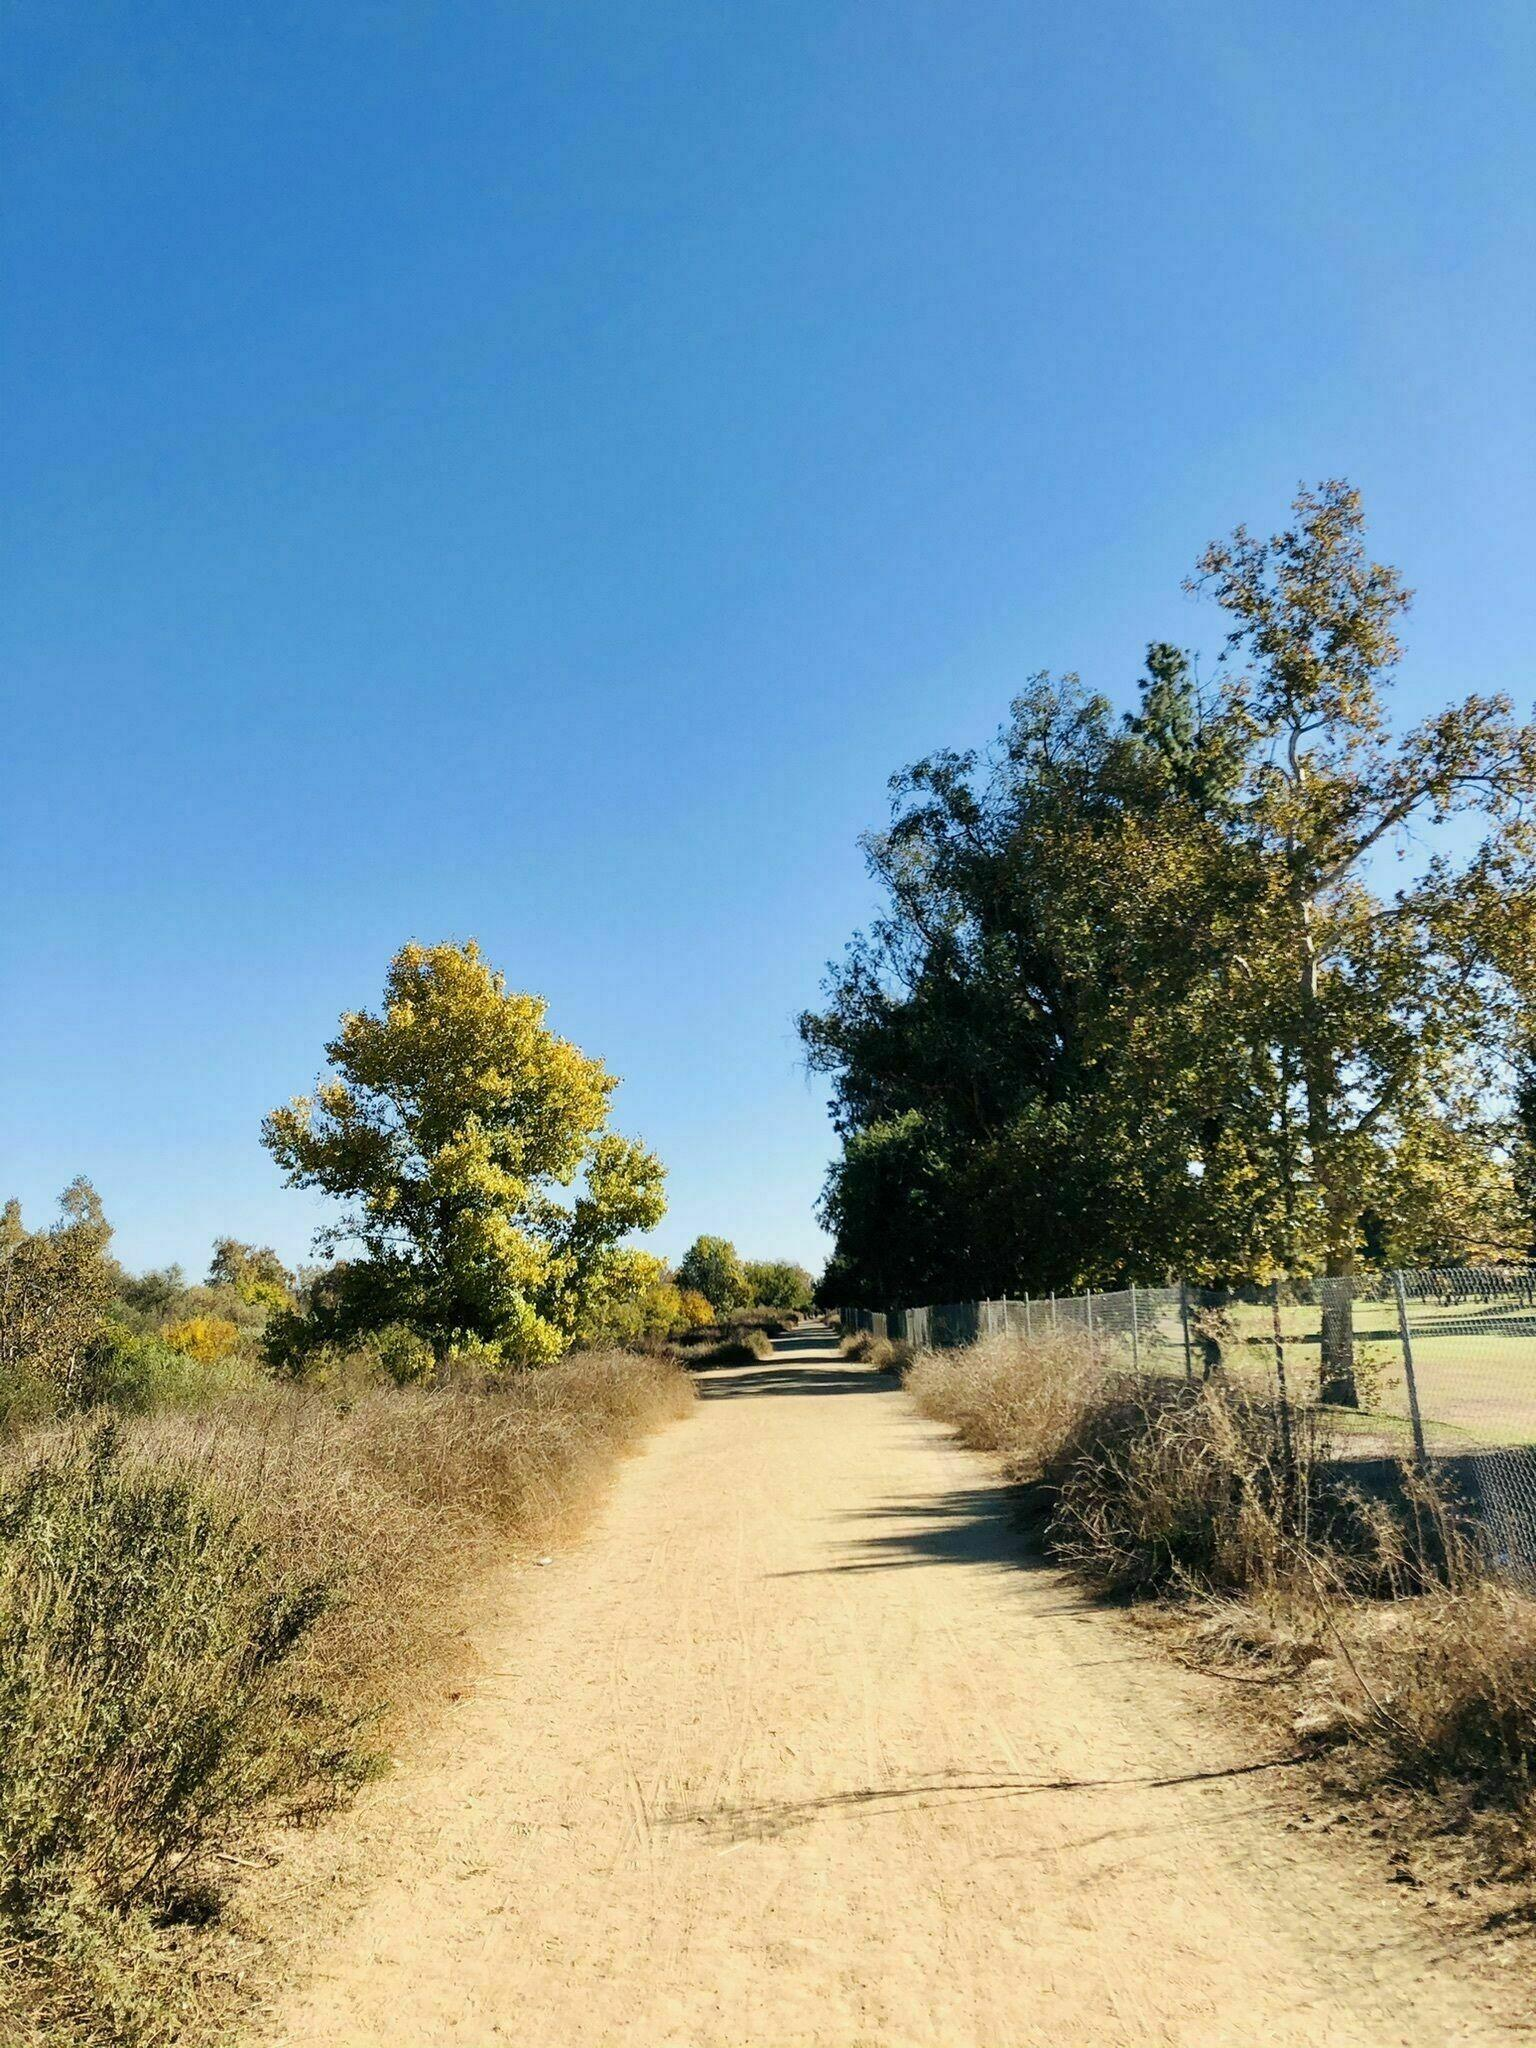 Easy 3 mile Walking trail around Encino Golf Course Tuesday @8:30AM